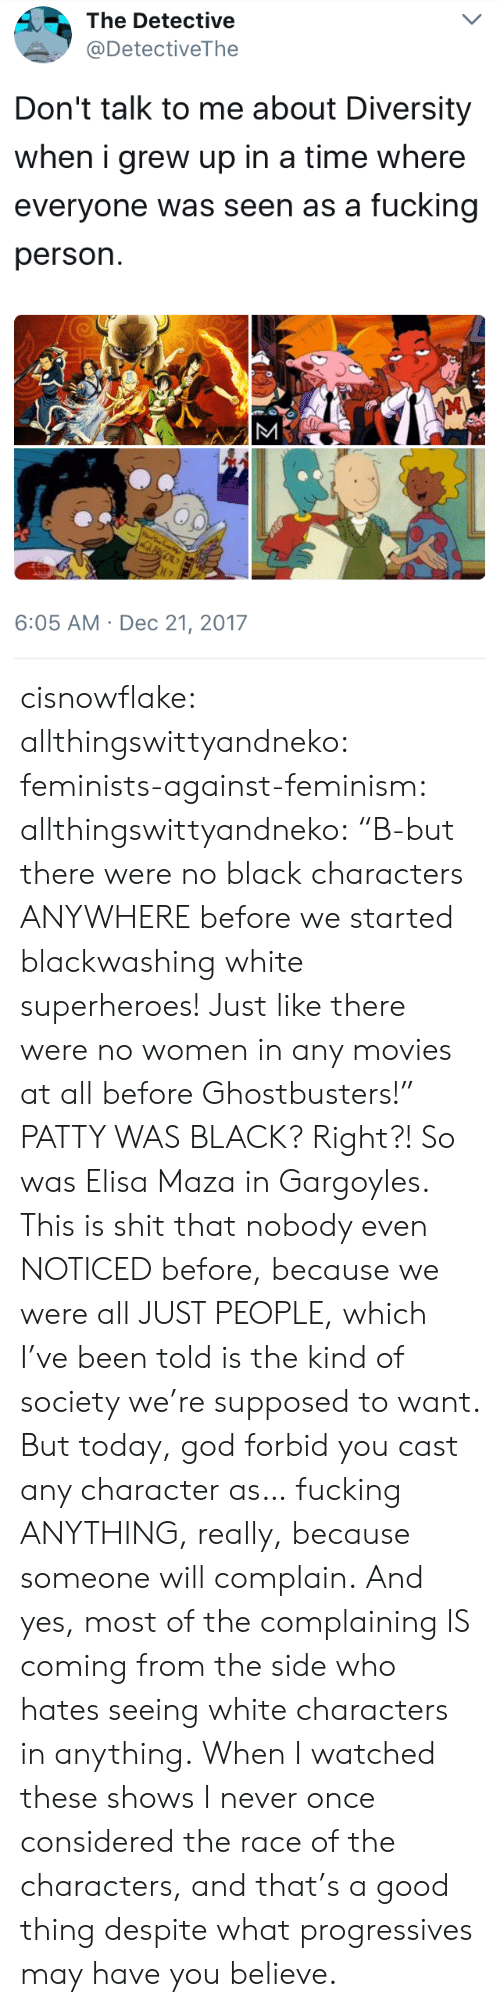 """Ghostbusters: The Detective  @DetectiveThe  Don't talk to me about Diversity  when i grew up in a time where  everyone was seen as a fucking  person.  6:05 AM Dec 21, 2017 cisnowflake: allthingswittyandneko:  feminists-against-feminism:  allthingswittyandneko: """"B-but there were no black characters ANYWHERE before we started blackwashing white superheroes! Just like there were no women in any movies at all before Ghostbusters!"""" PATTY WAS BLACK?  Right?! So was Elisa Maza in Gargoyles.  This is shit that nobody even NOTICED before, because we were all JUST PEOPLE, which I've been told is the kind of society we're supposed to want. But today, god forbid you cast any character as… fucking ANYTHING, really, because someone will complain. And yes, most of the complaining IS coming from the side who hates seeing white characters in anything.  When I watched these shows I never once considered the race of the characters, and that's a good thing despite what progressives may have you believe."""